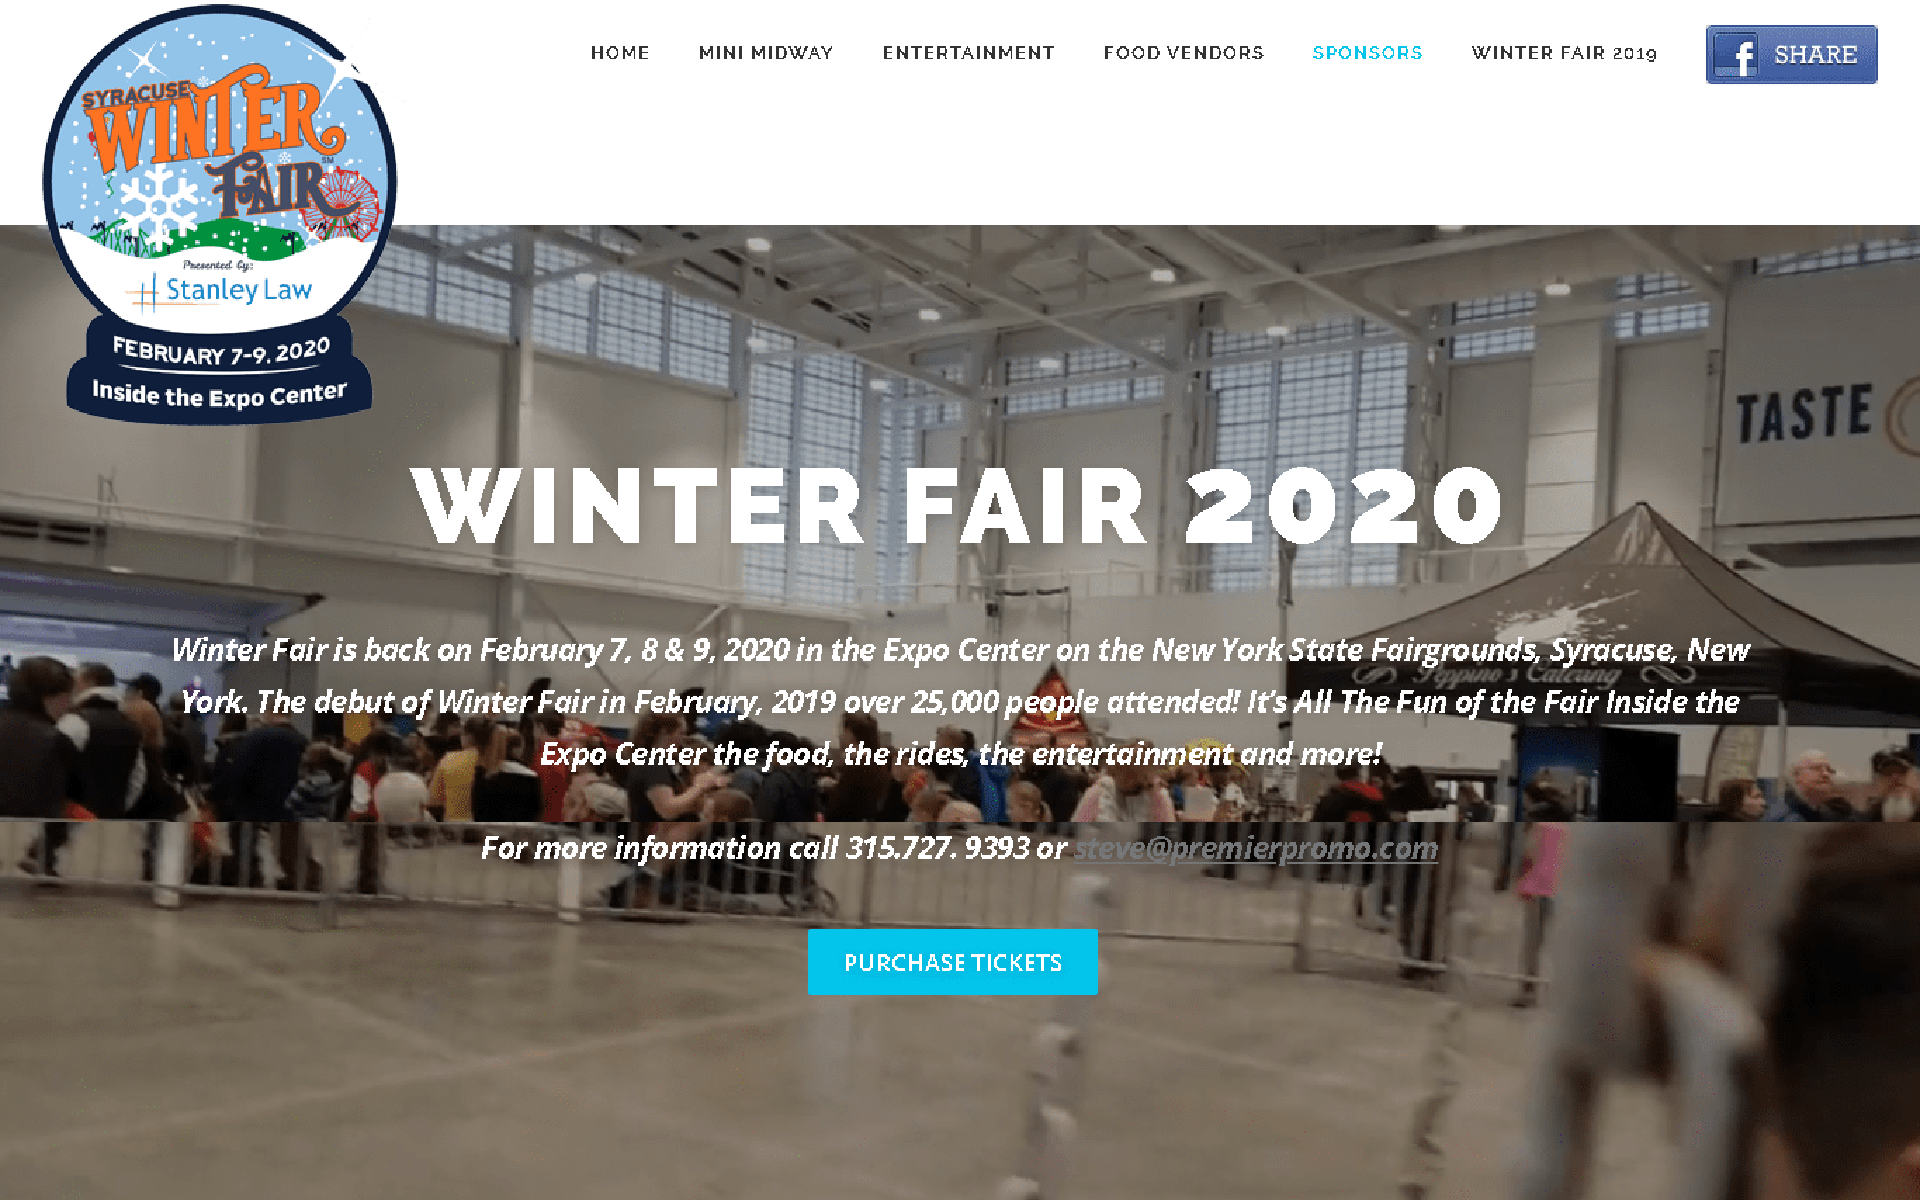 Winter Fair 2020 Syracuse New York State Fair Gounds desktop